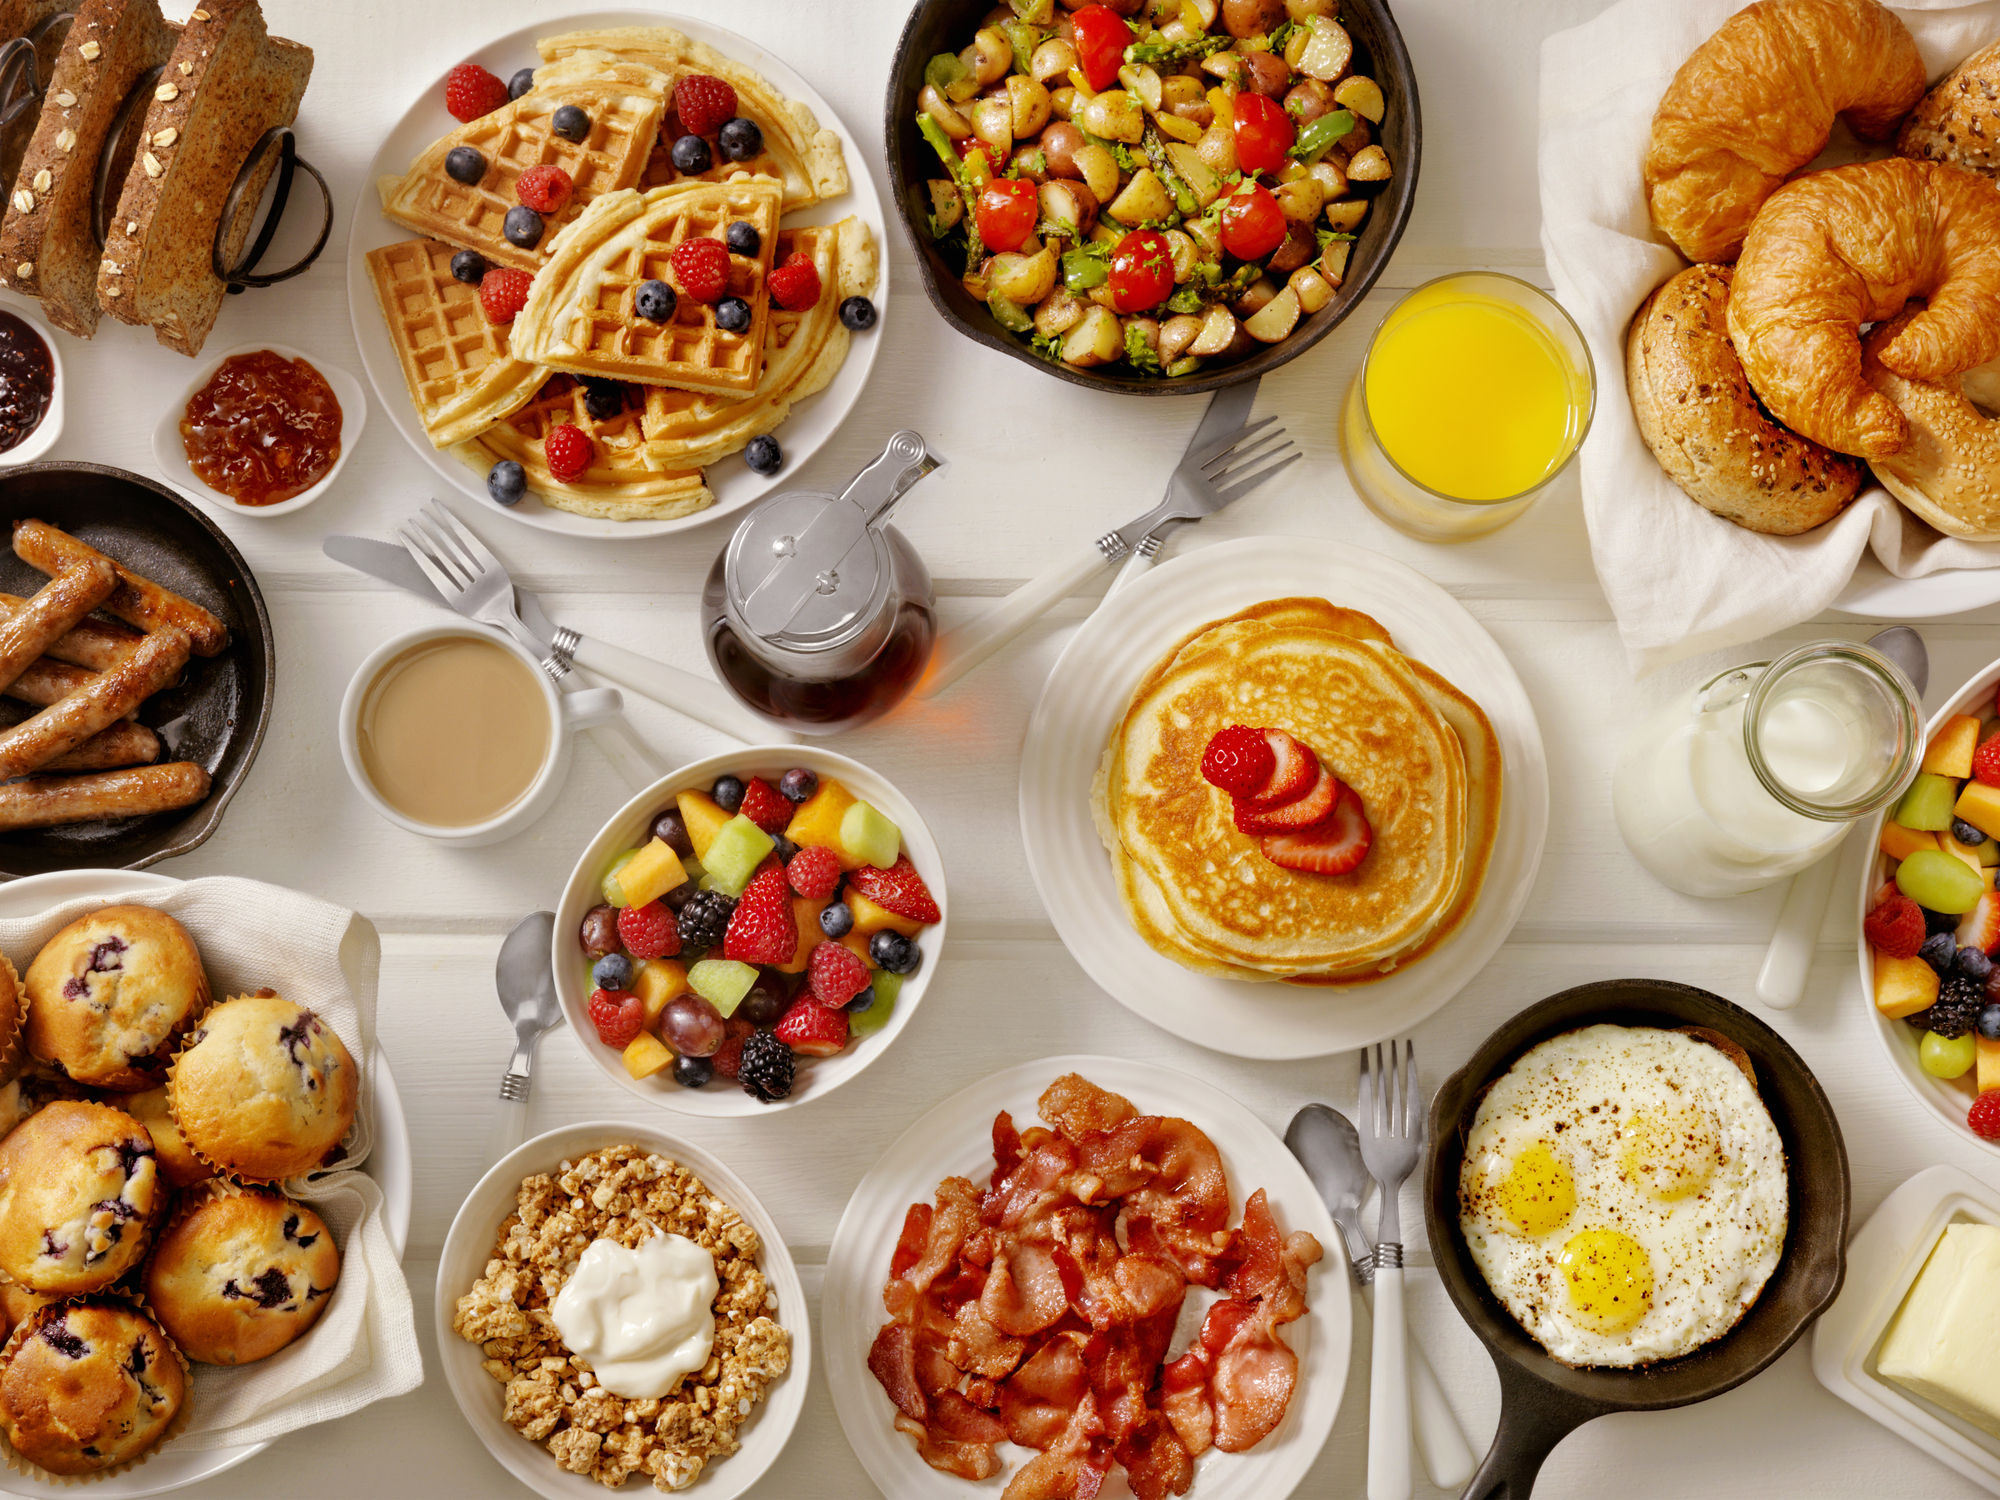 Here's What These 15 Successful People Eat for Breakfast